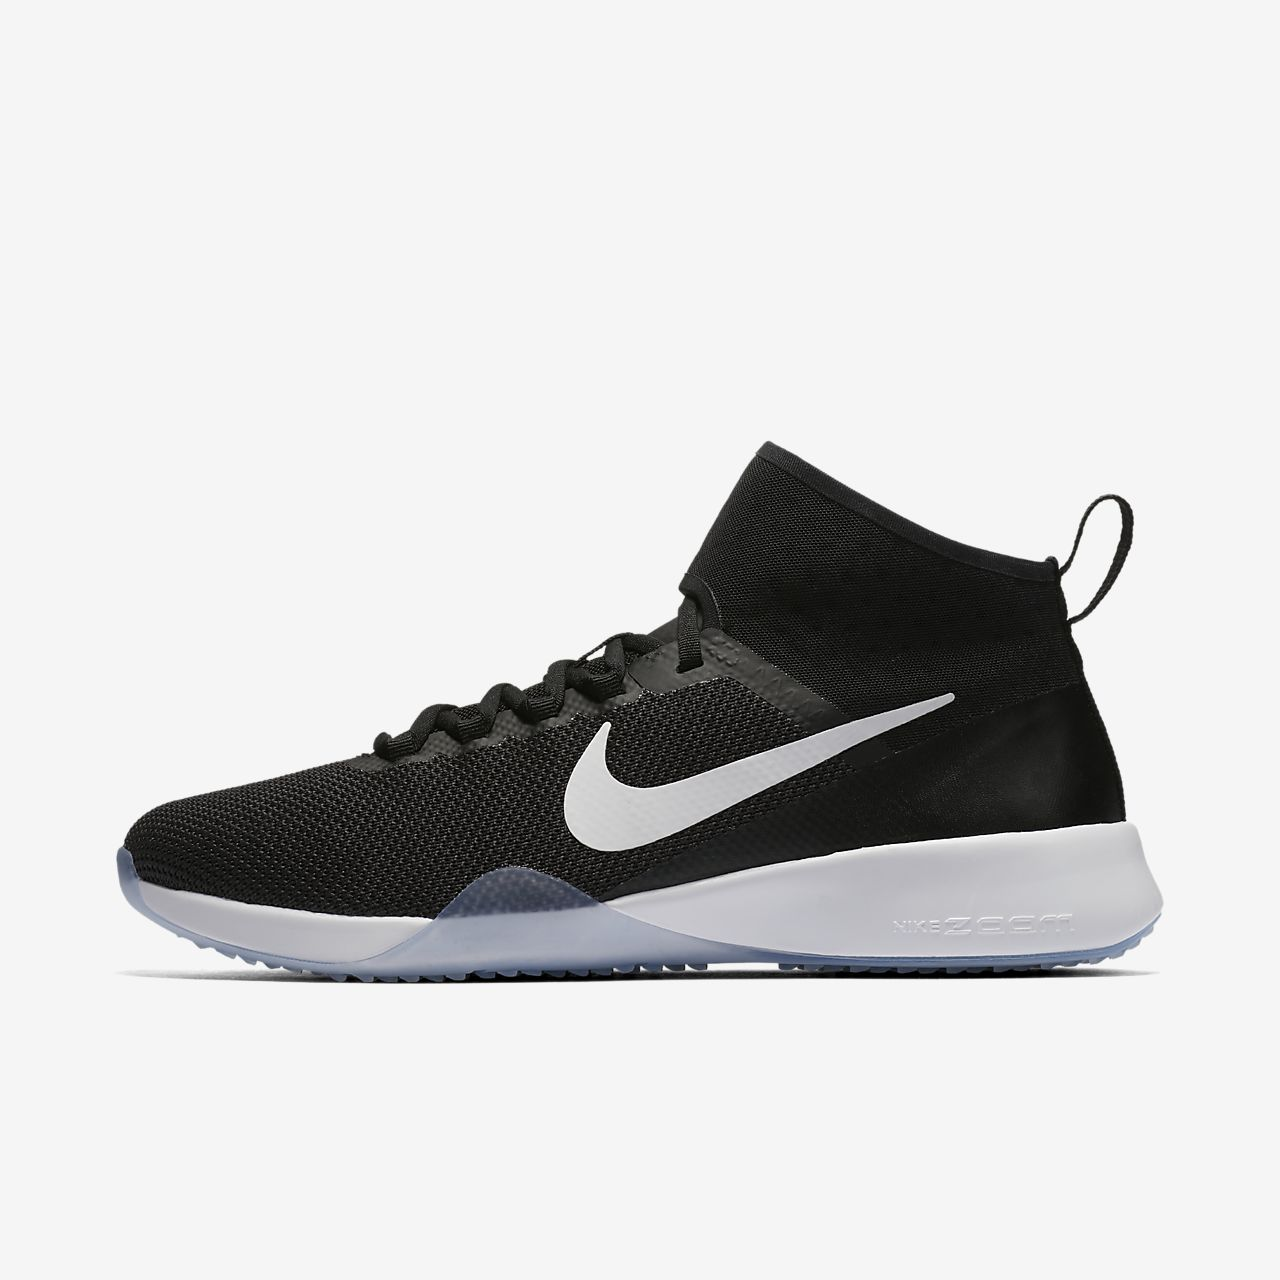 Nike Air Zoom Strong 2 Women's Training Shoes Black/White rT3943I